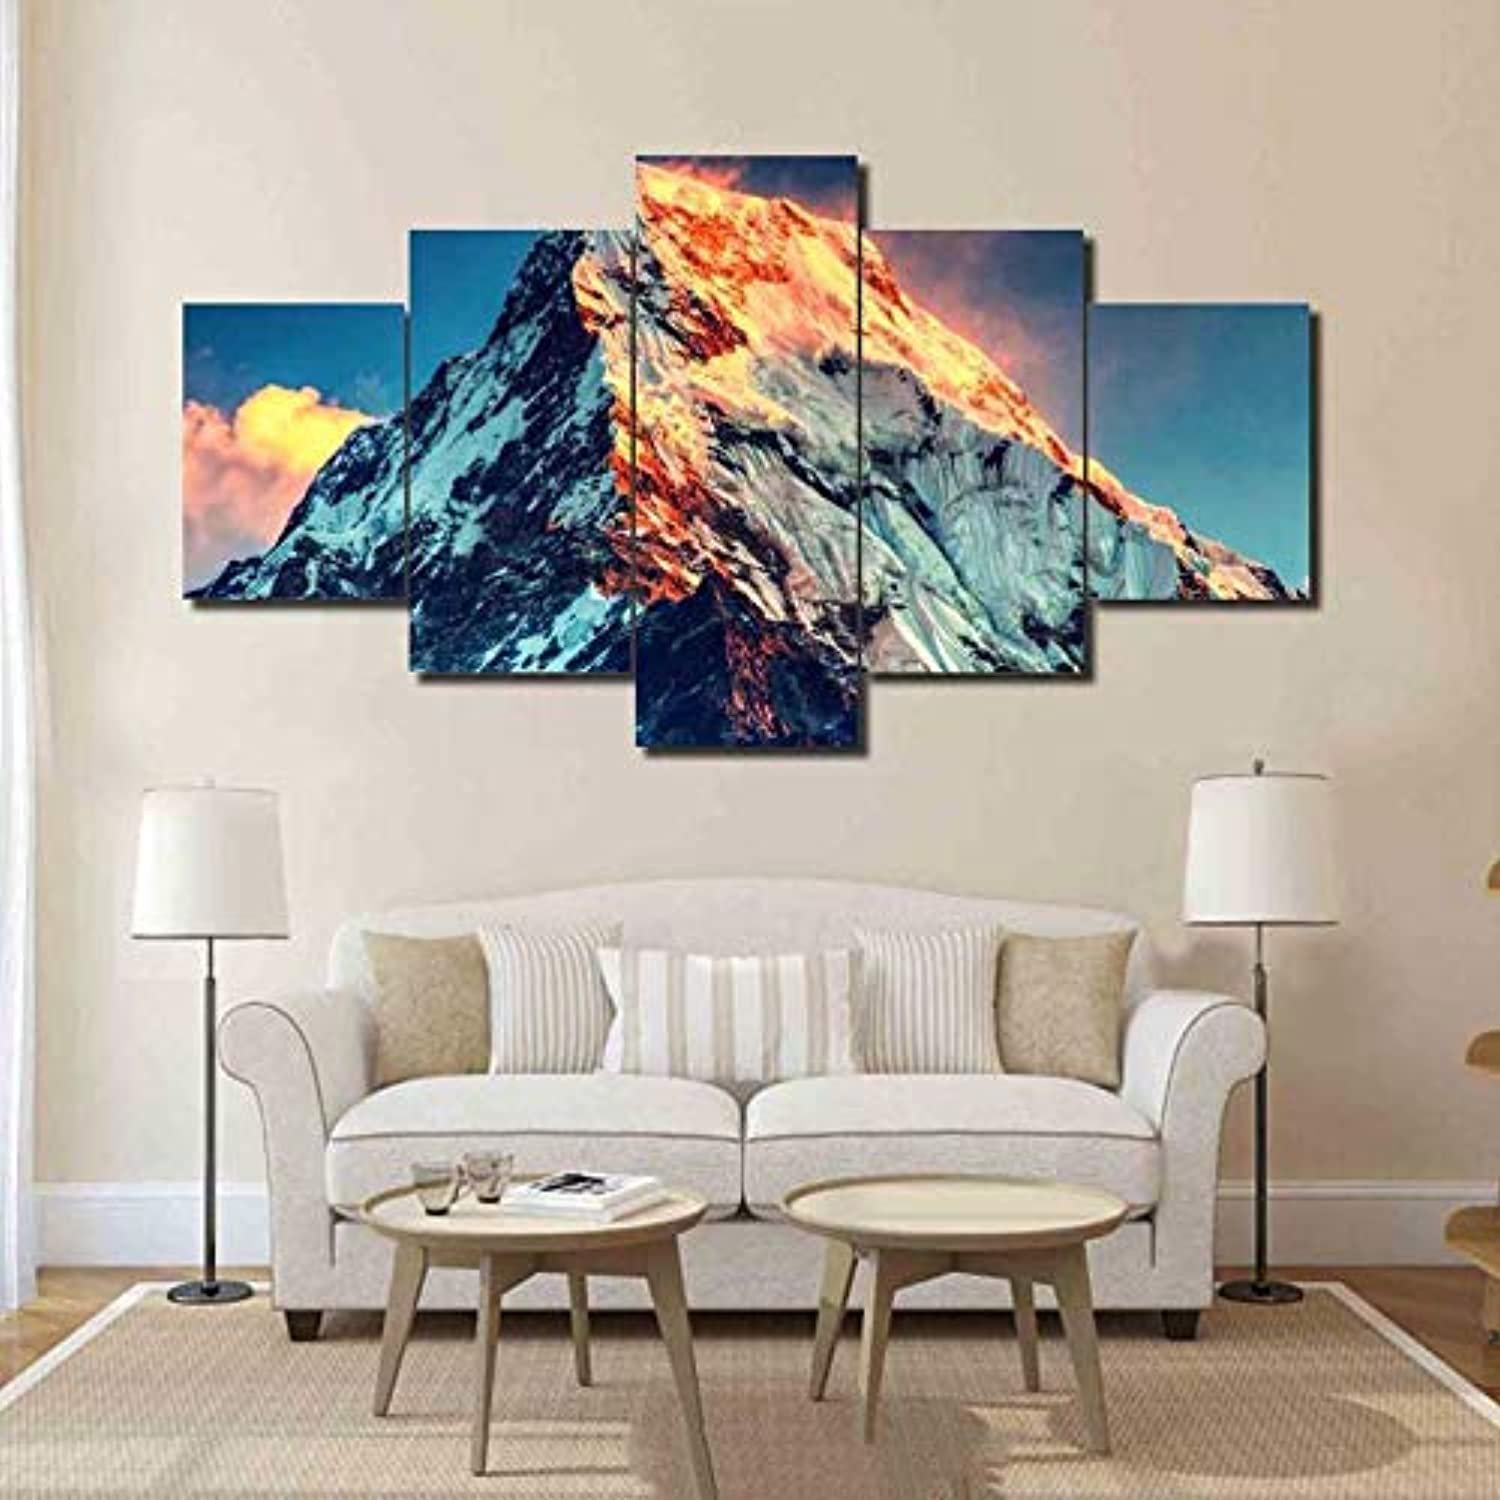 Interior Living Room Canvas Painting Modular 5 Panel Mount Everest Landscape Frame Wall Art Poster Modern HD Print Pictures